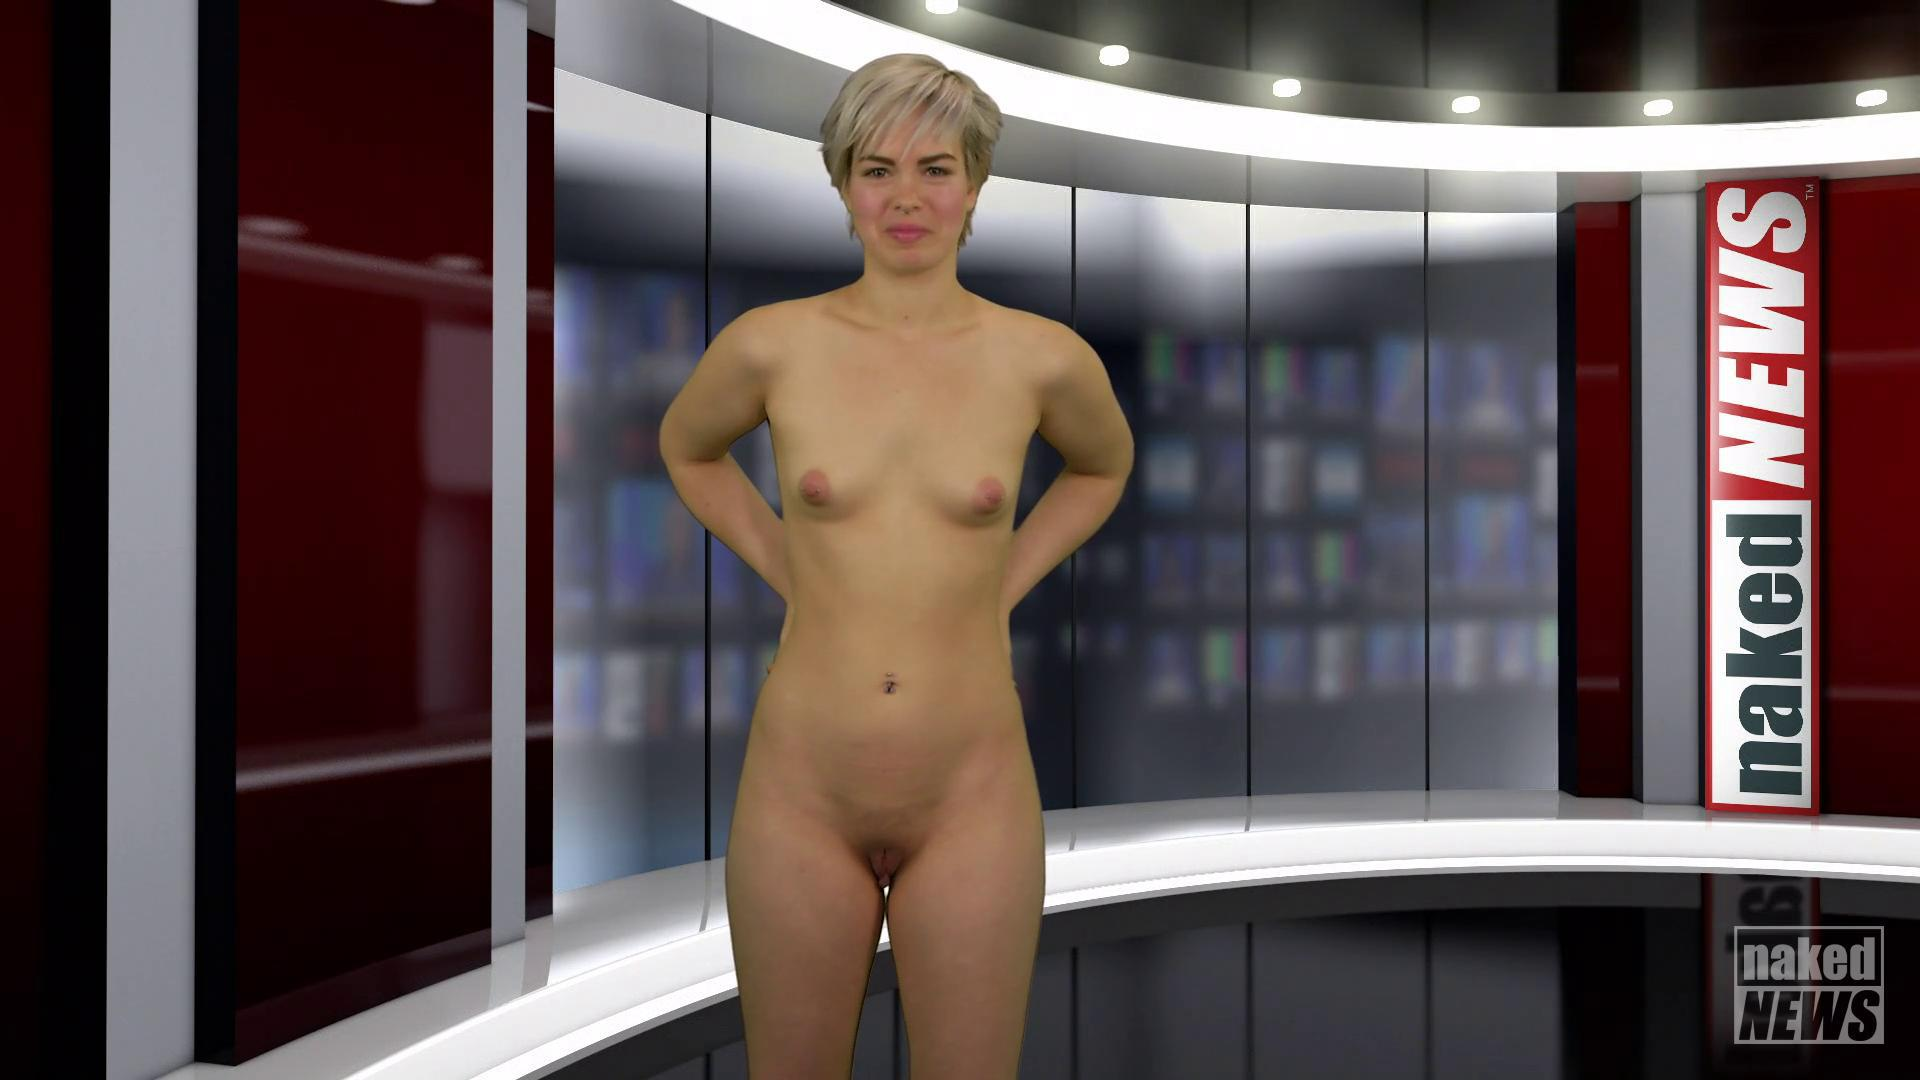 Naked News Is Free For A Week Thats The Naked Truth